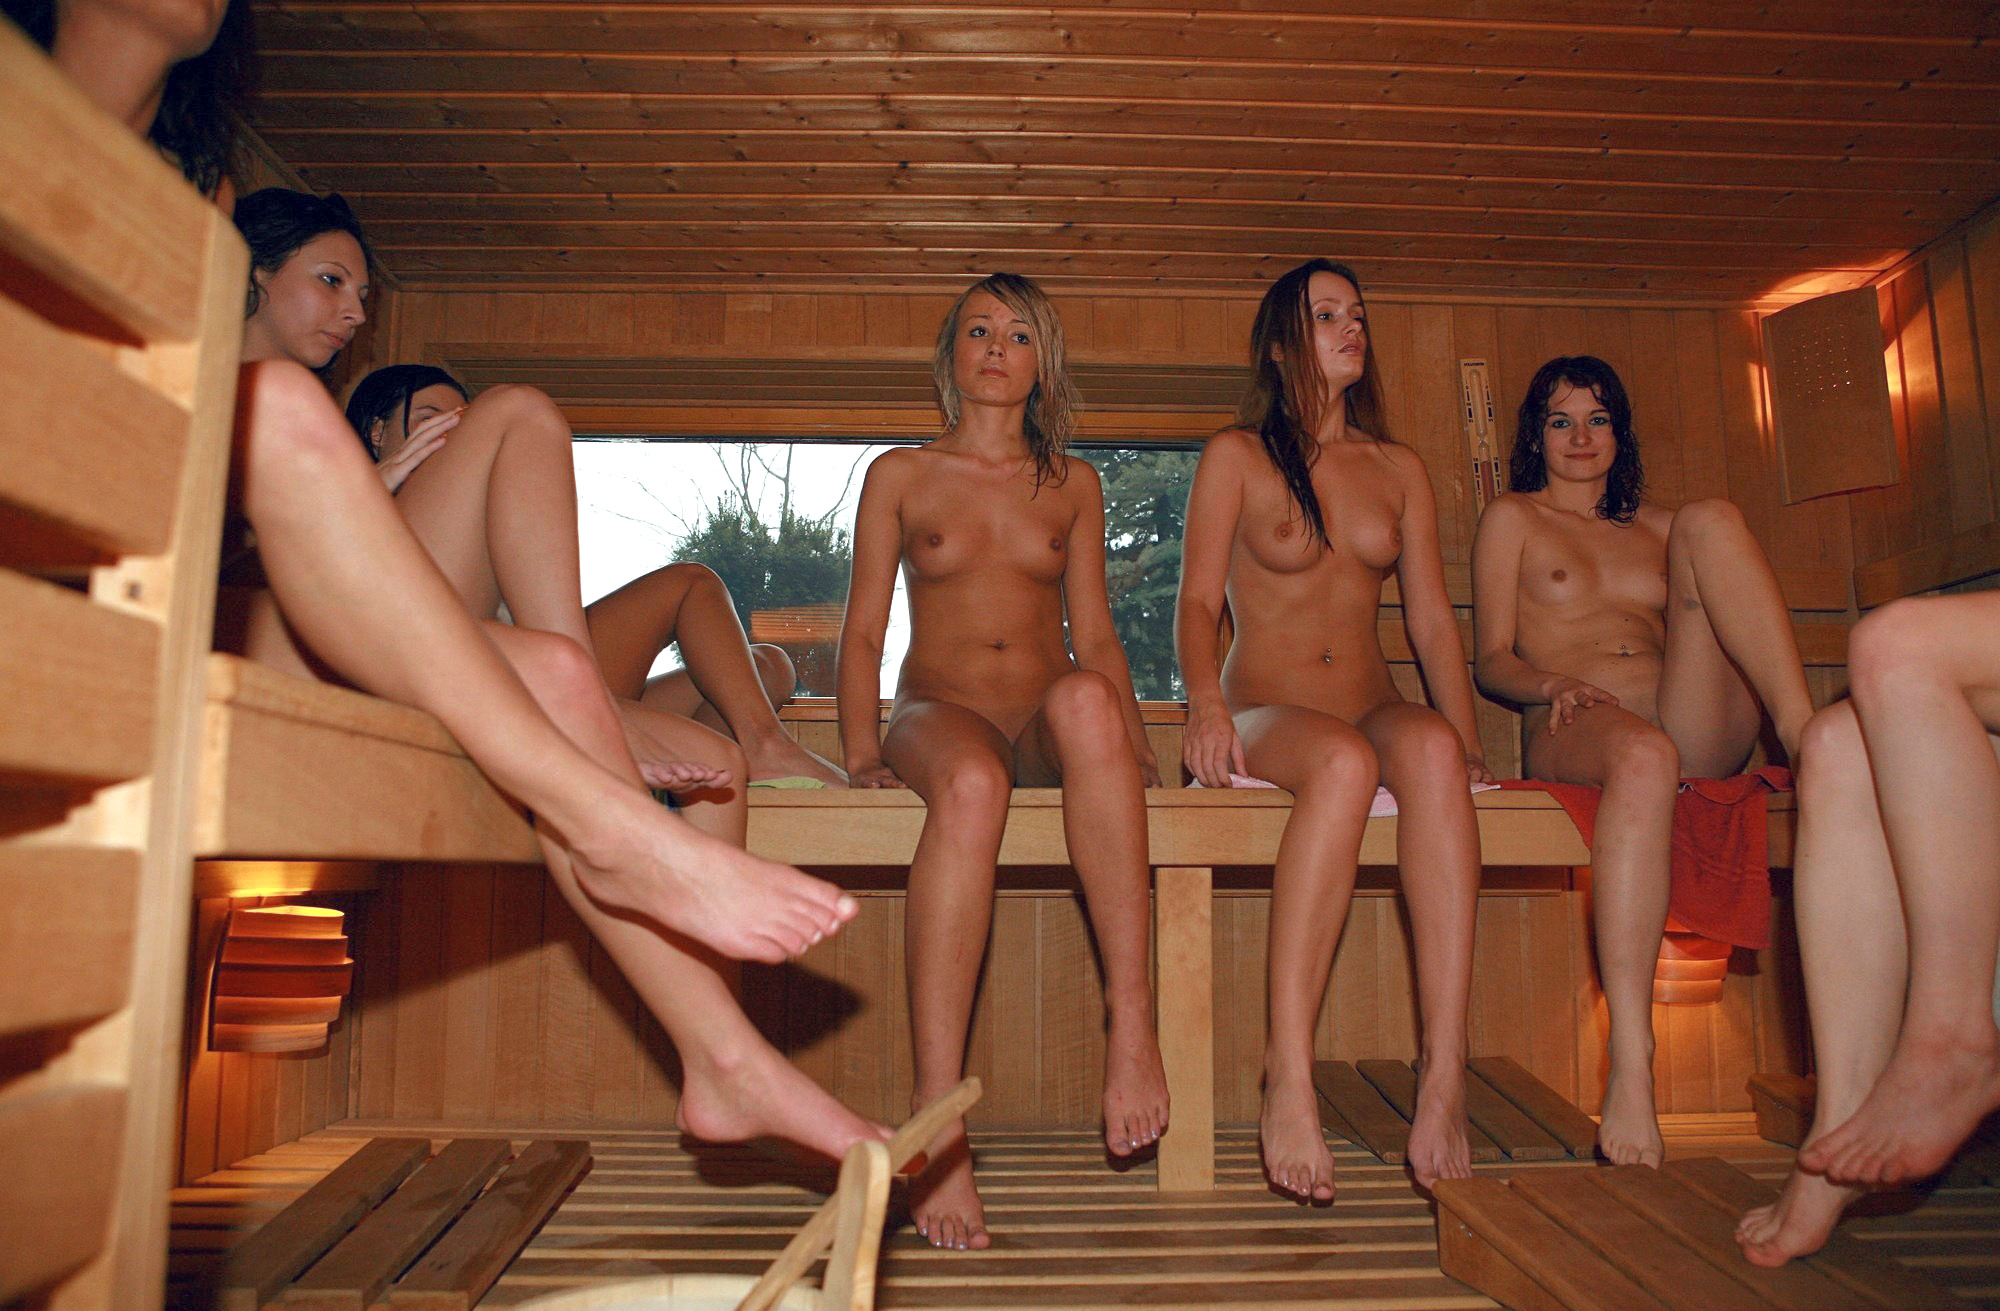 naked-girls-in-group-mix-vol3-47